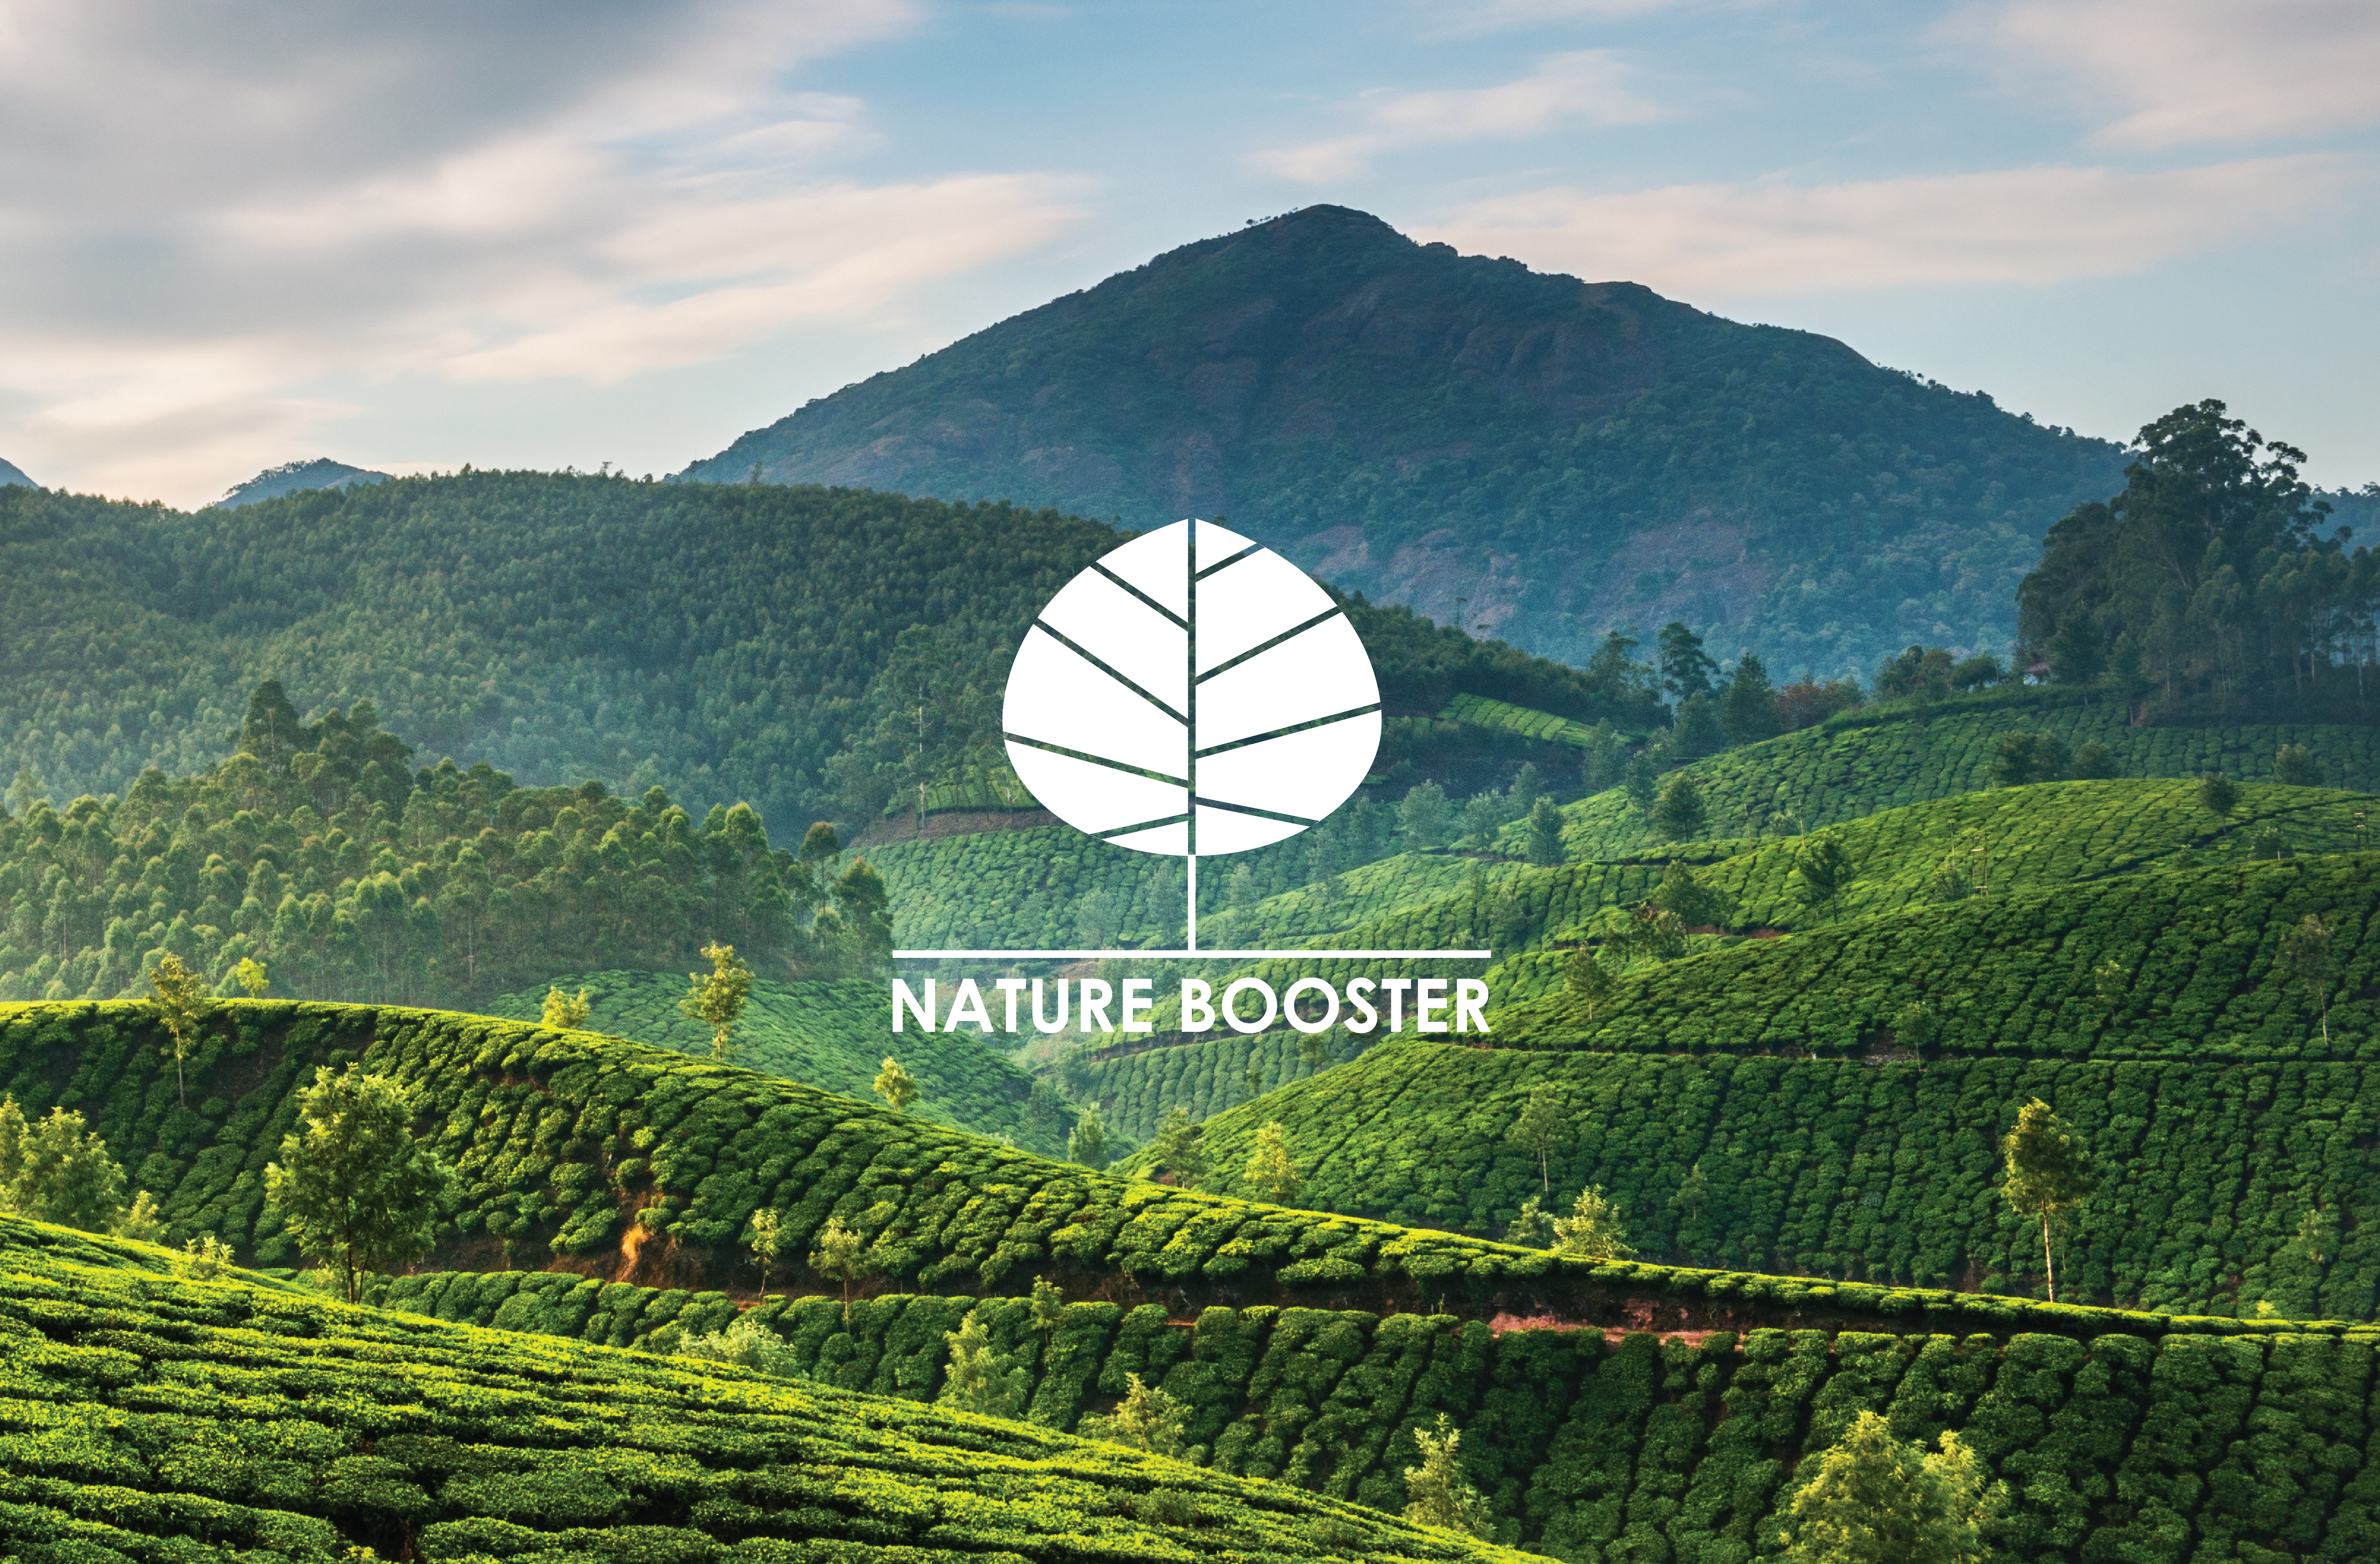 Nature Booster Stationary-05